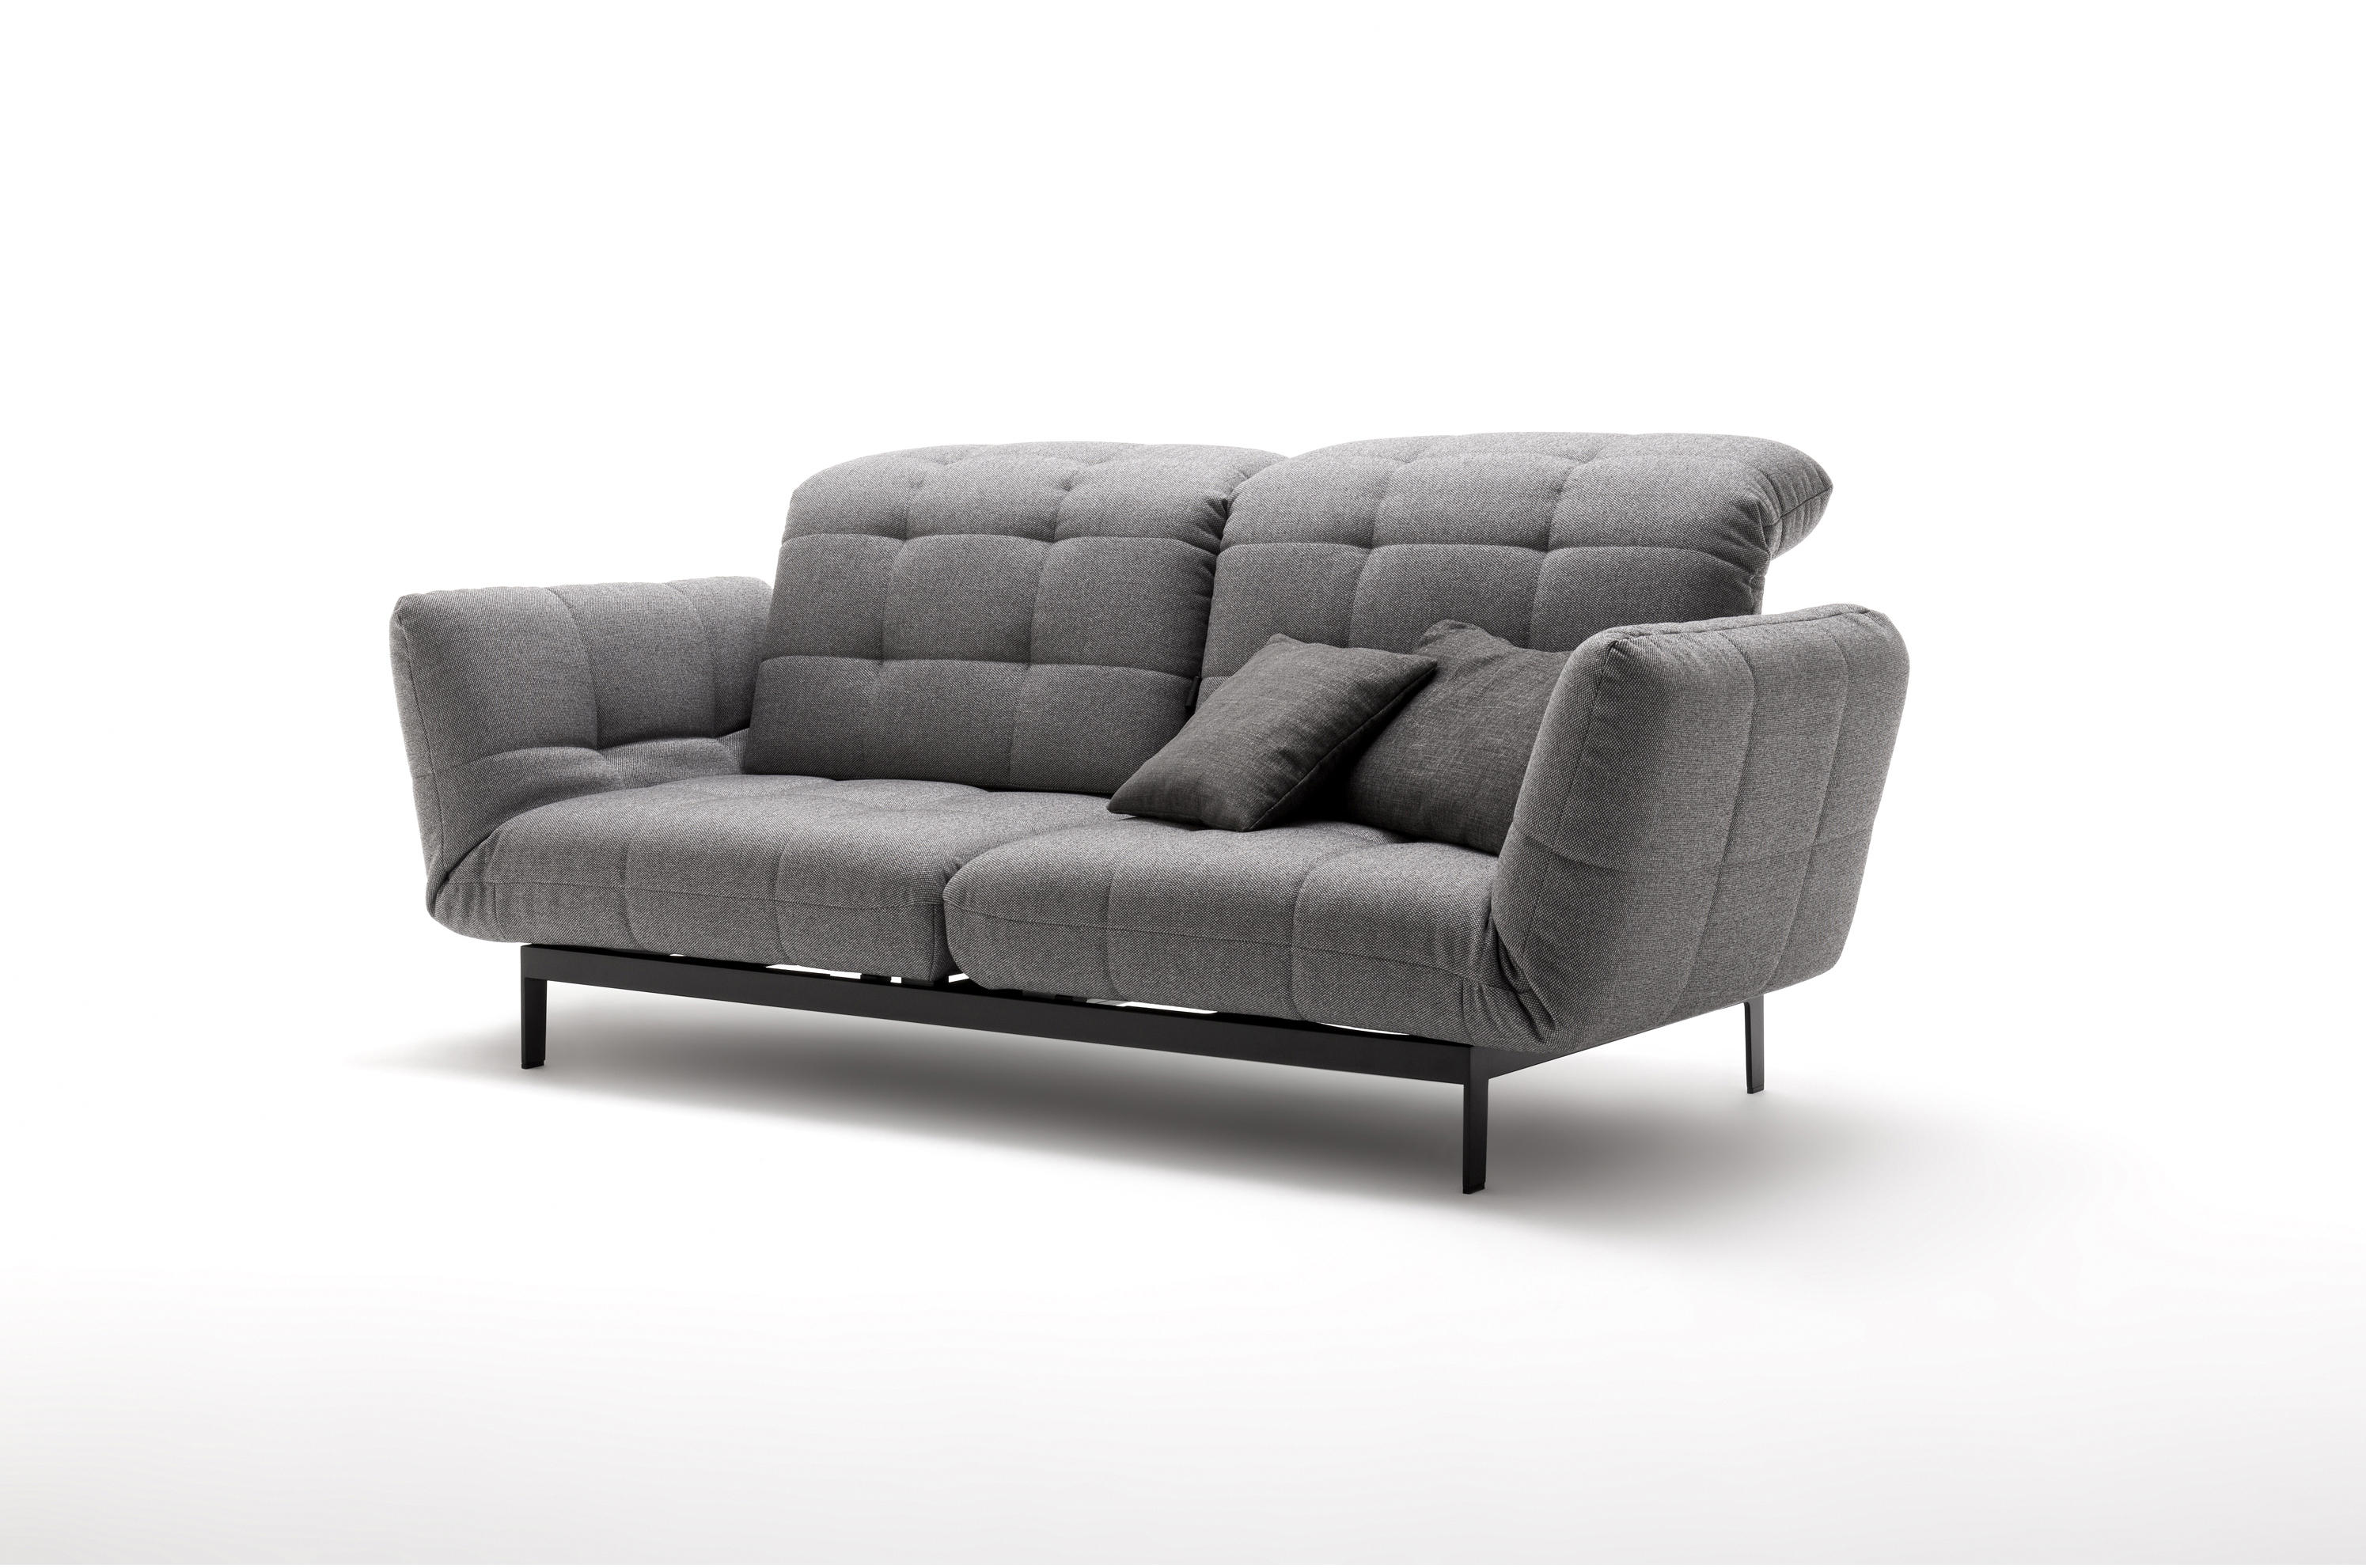 sofa rolf benz tondo rolf benz sofa milia shop sofa by rolf benz sofa rolf benz onda innenr. Black Bedroom Furniture Sets. Home Design Ideas